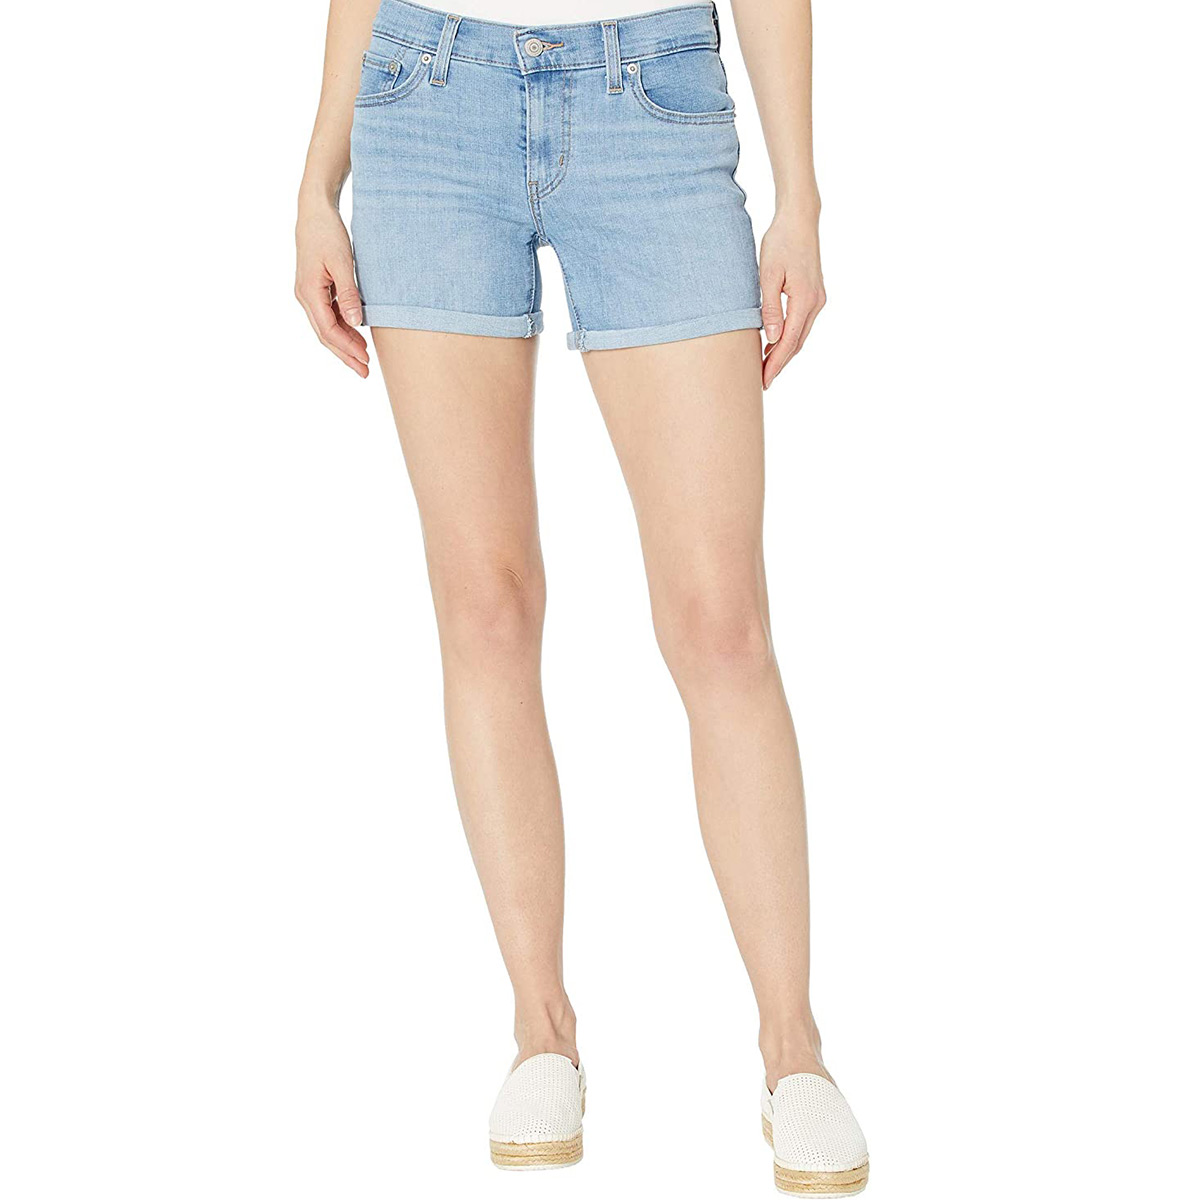 levi's mid length denim shorts amazon sale